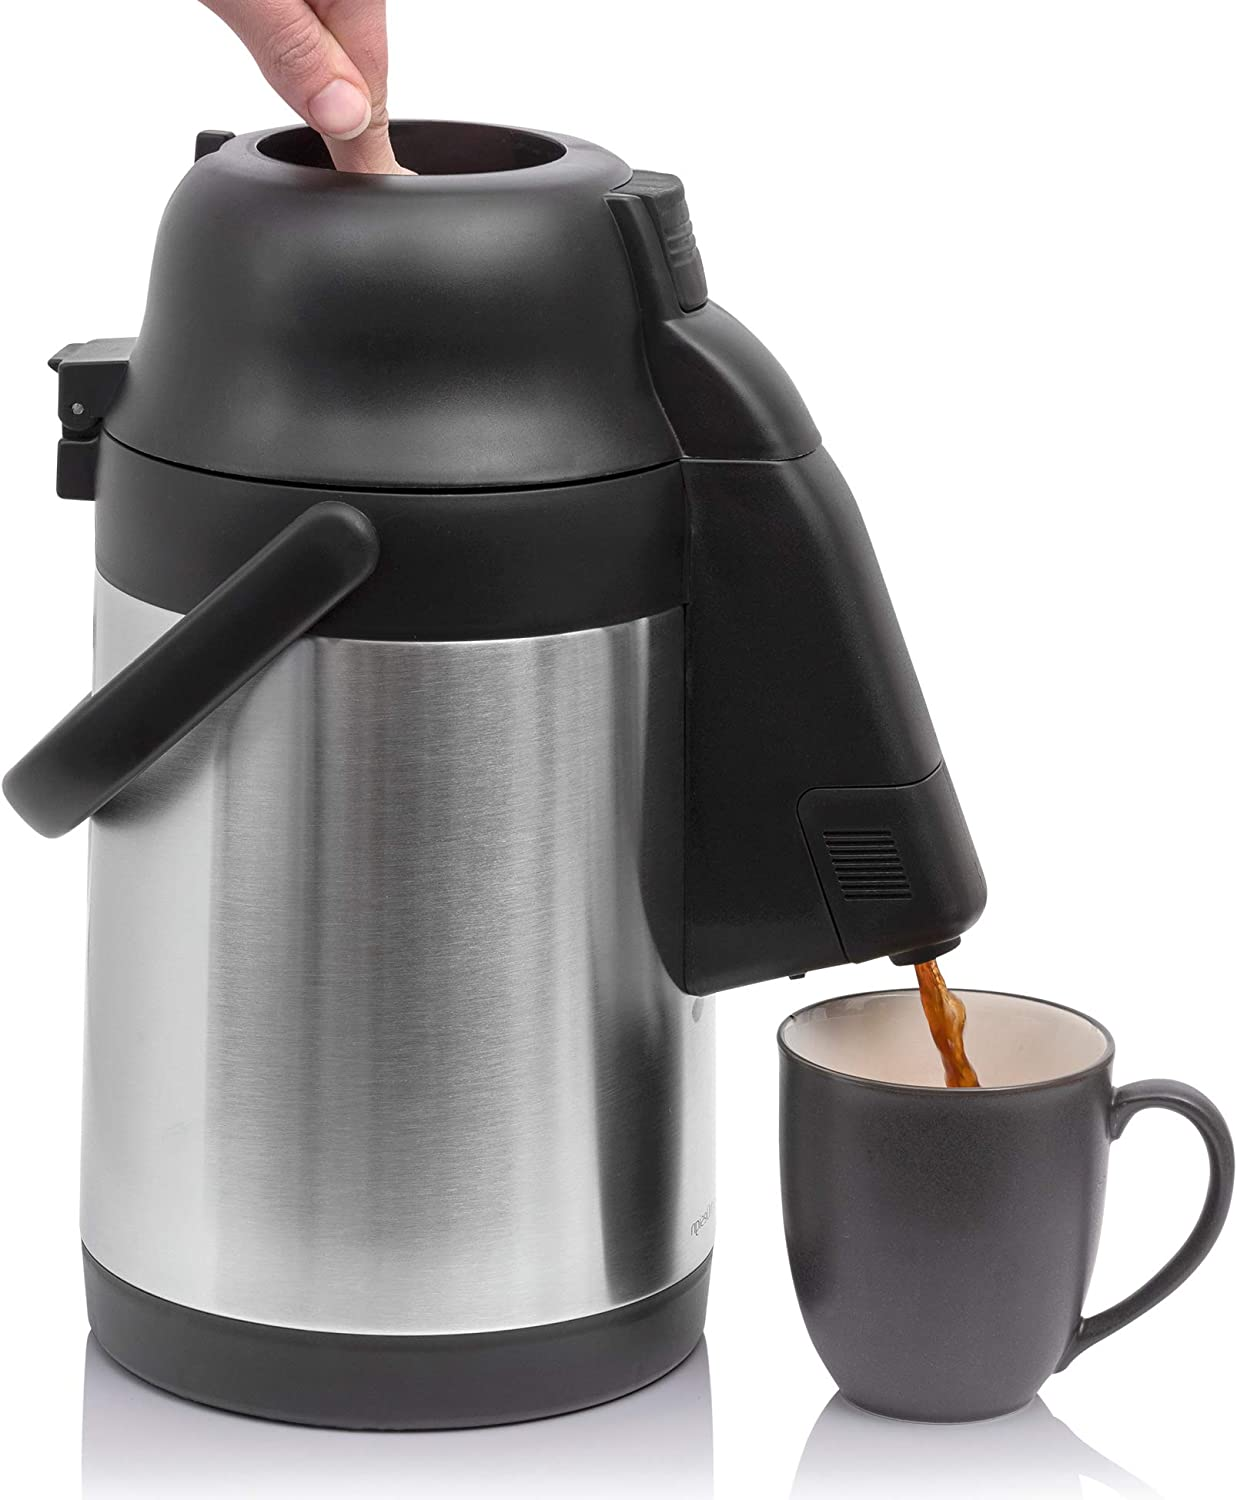 New 101 Oz (3 Liter) Airpot Coffee Dispenser with Extendable Nozzle | Stainless Steel Double-Wall Carafe | BPA-Free Vacuum Insulated Thermos | Keeps Beverages Hot (Warm up to 12 Hrs) or Cold (24 Hrs)